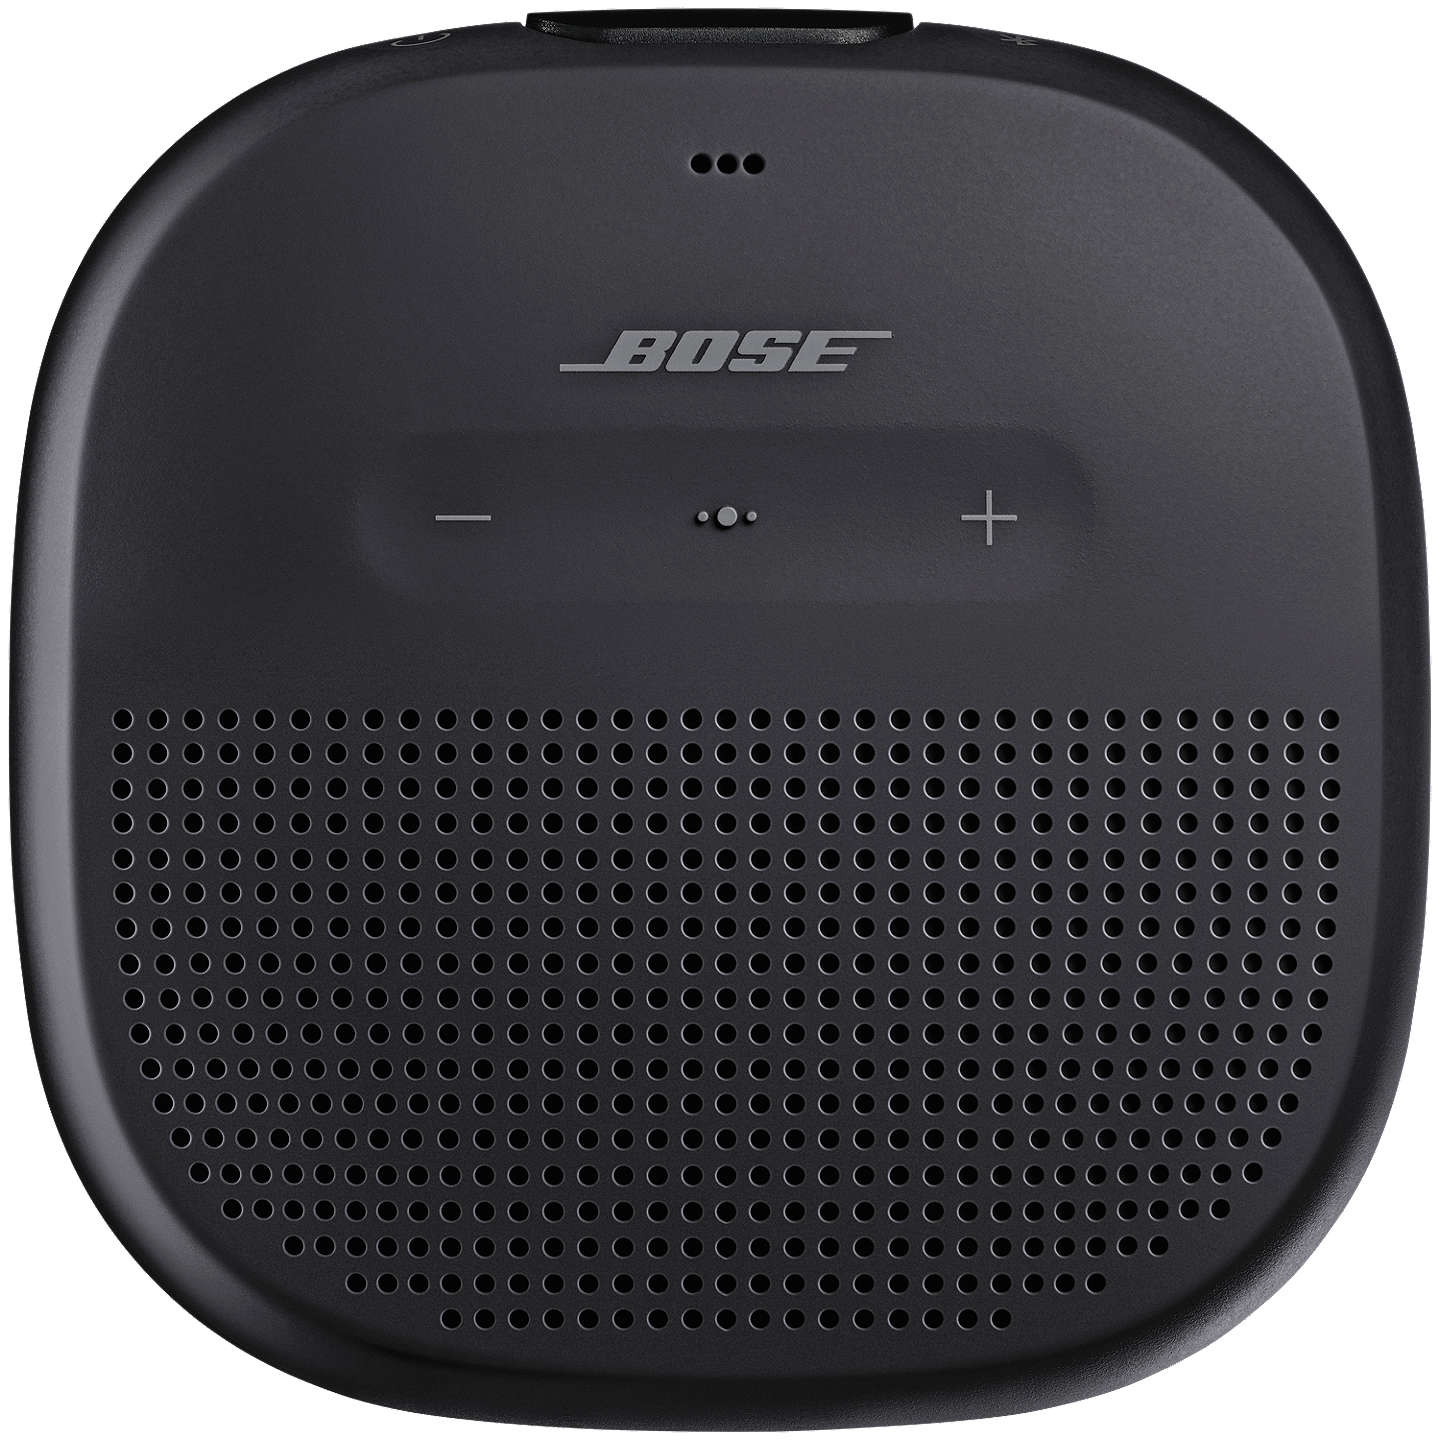 Bose® SoundLink® Micro Water-resistant Portable Bluetooth Speaker With Built-in Speakerphone At